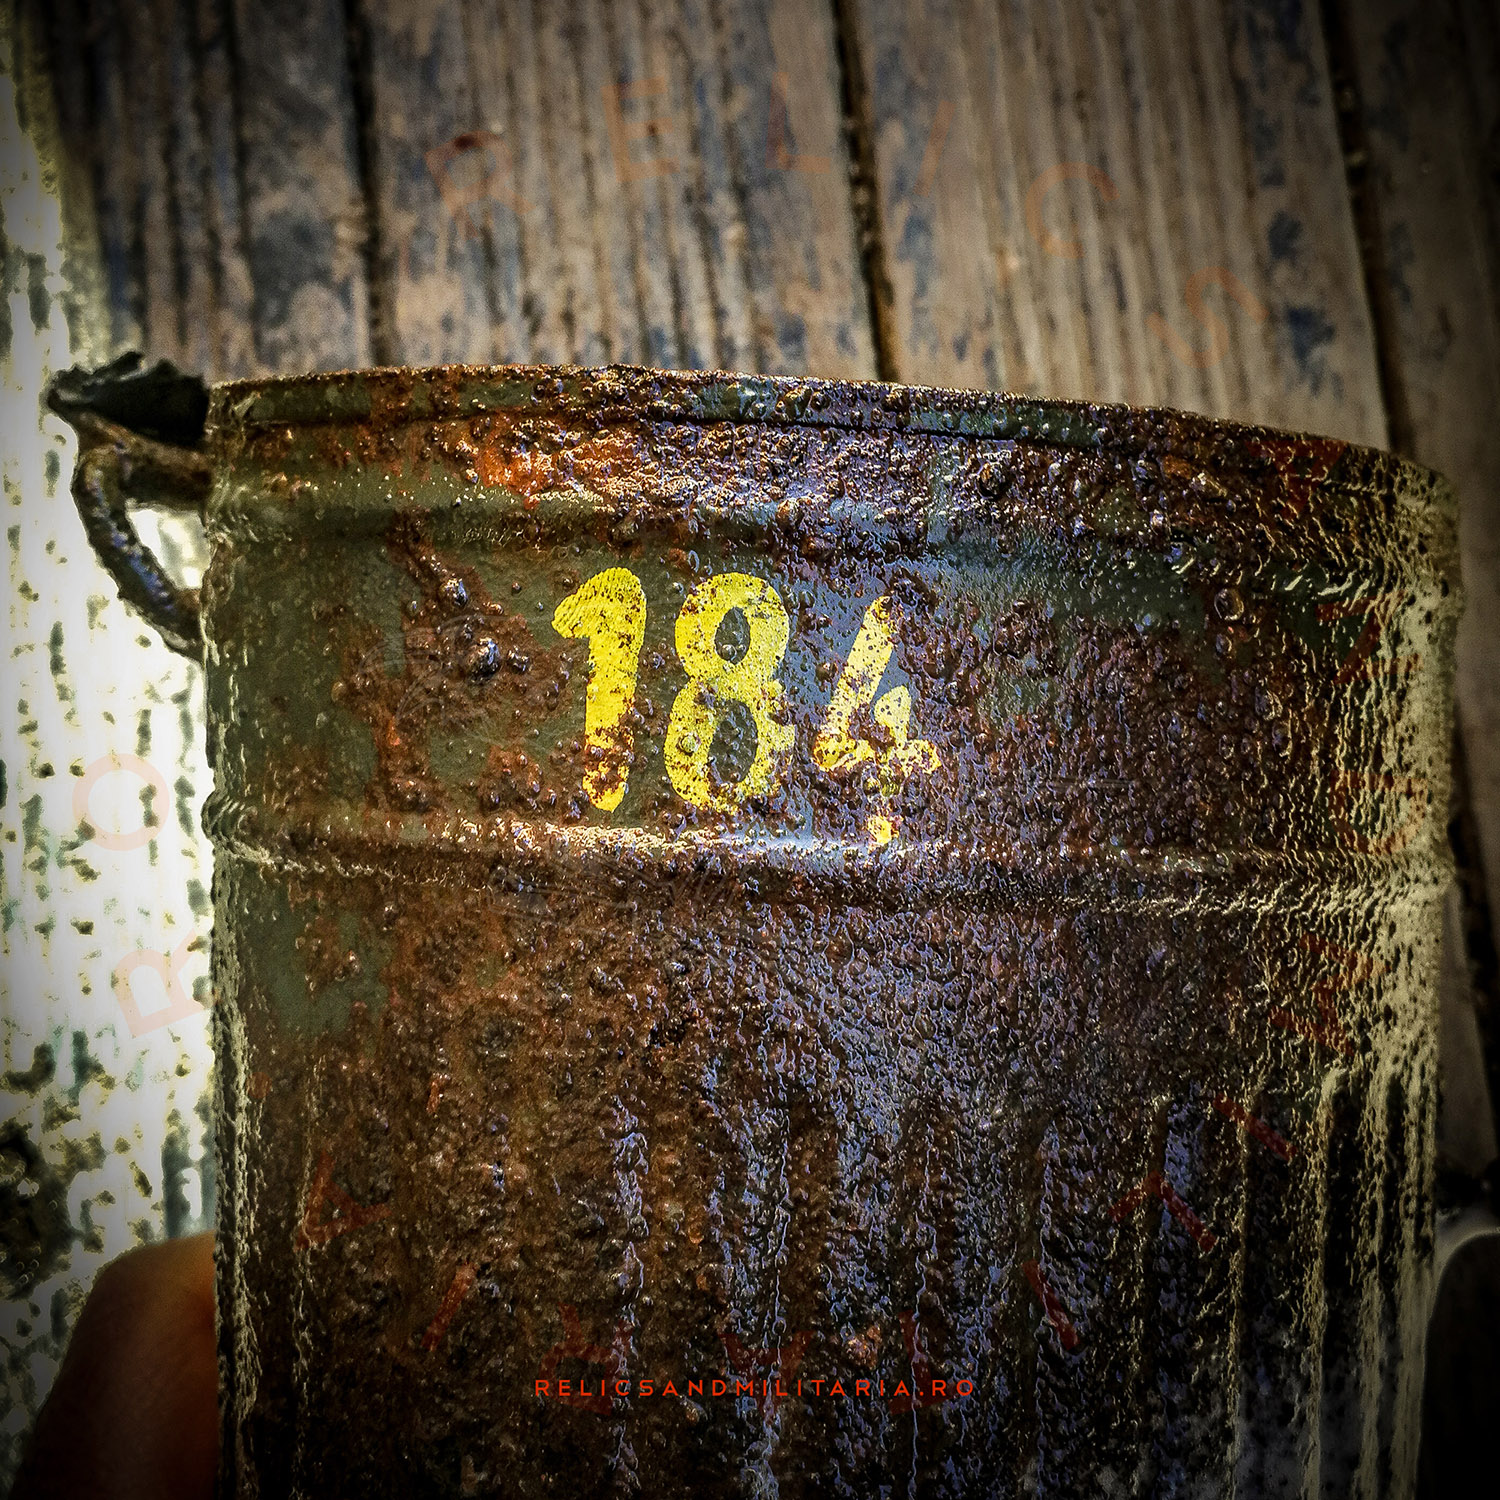 Wehrmacht gas mask canister with soldier's name written on it with paint